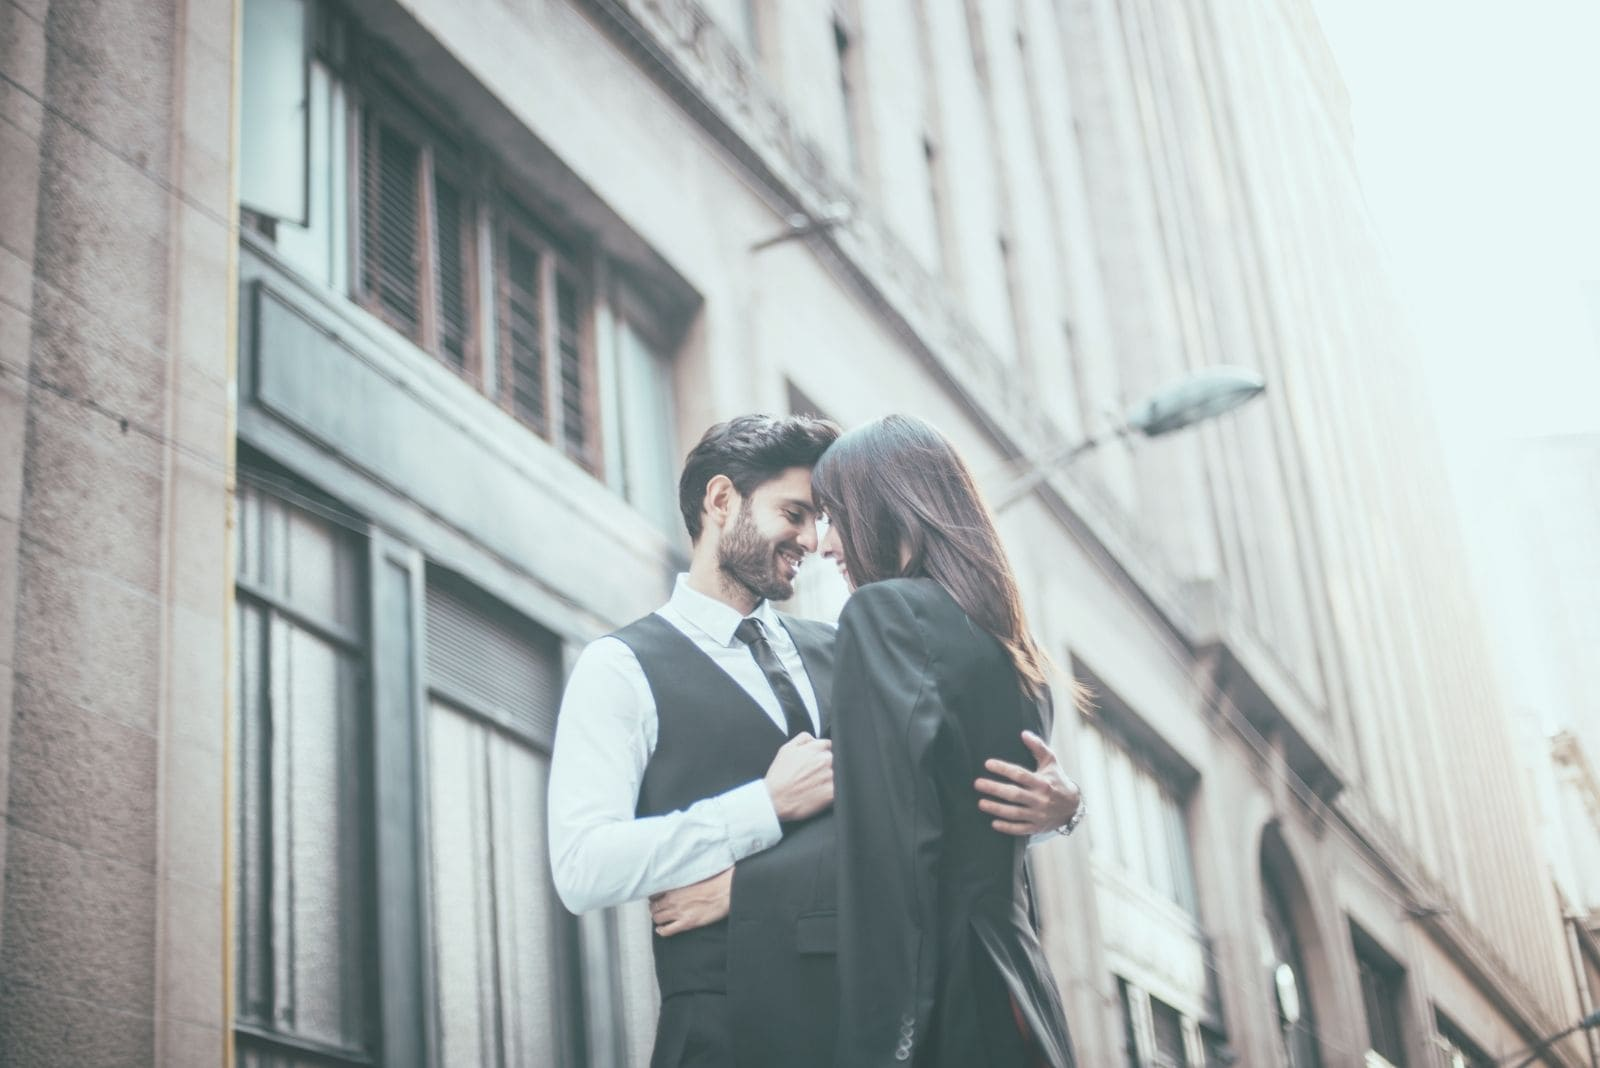 handsome gentleman in suit hugging a woman outdoors